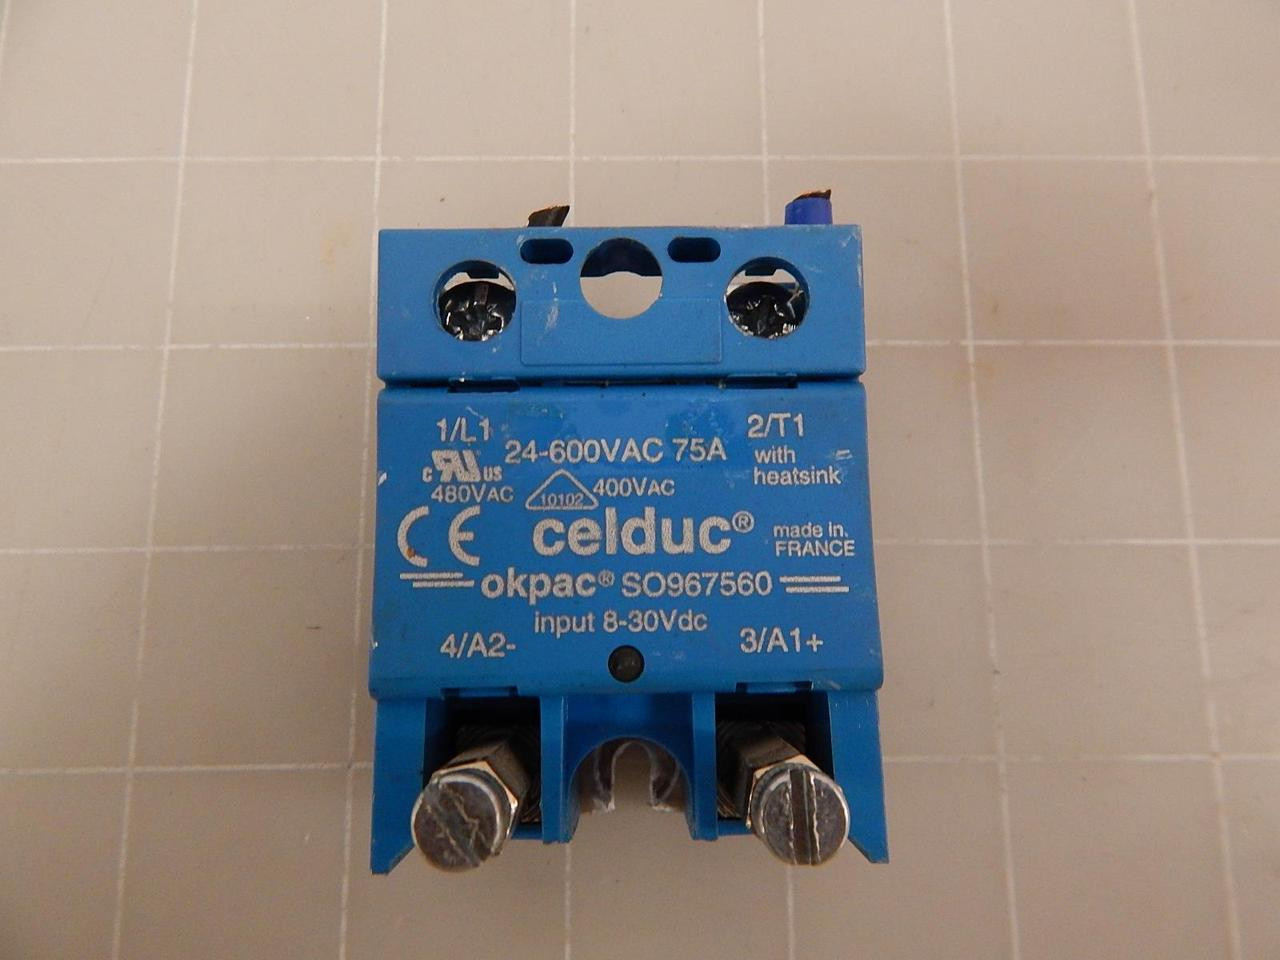 Okpac So967560 Solid State Relay 24 600vac 75a T60266 Test Celduc Image 1